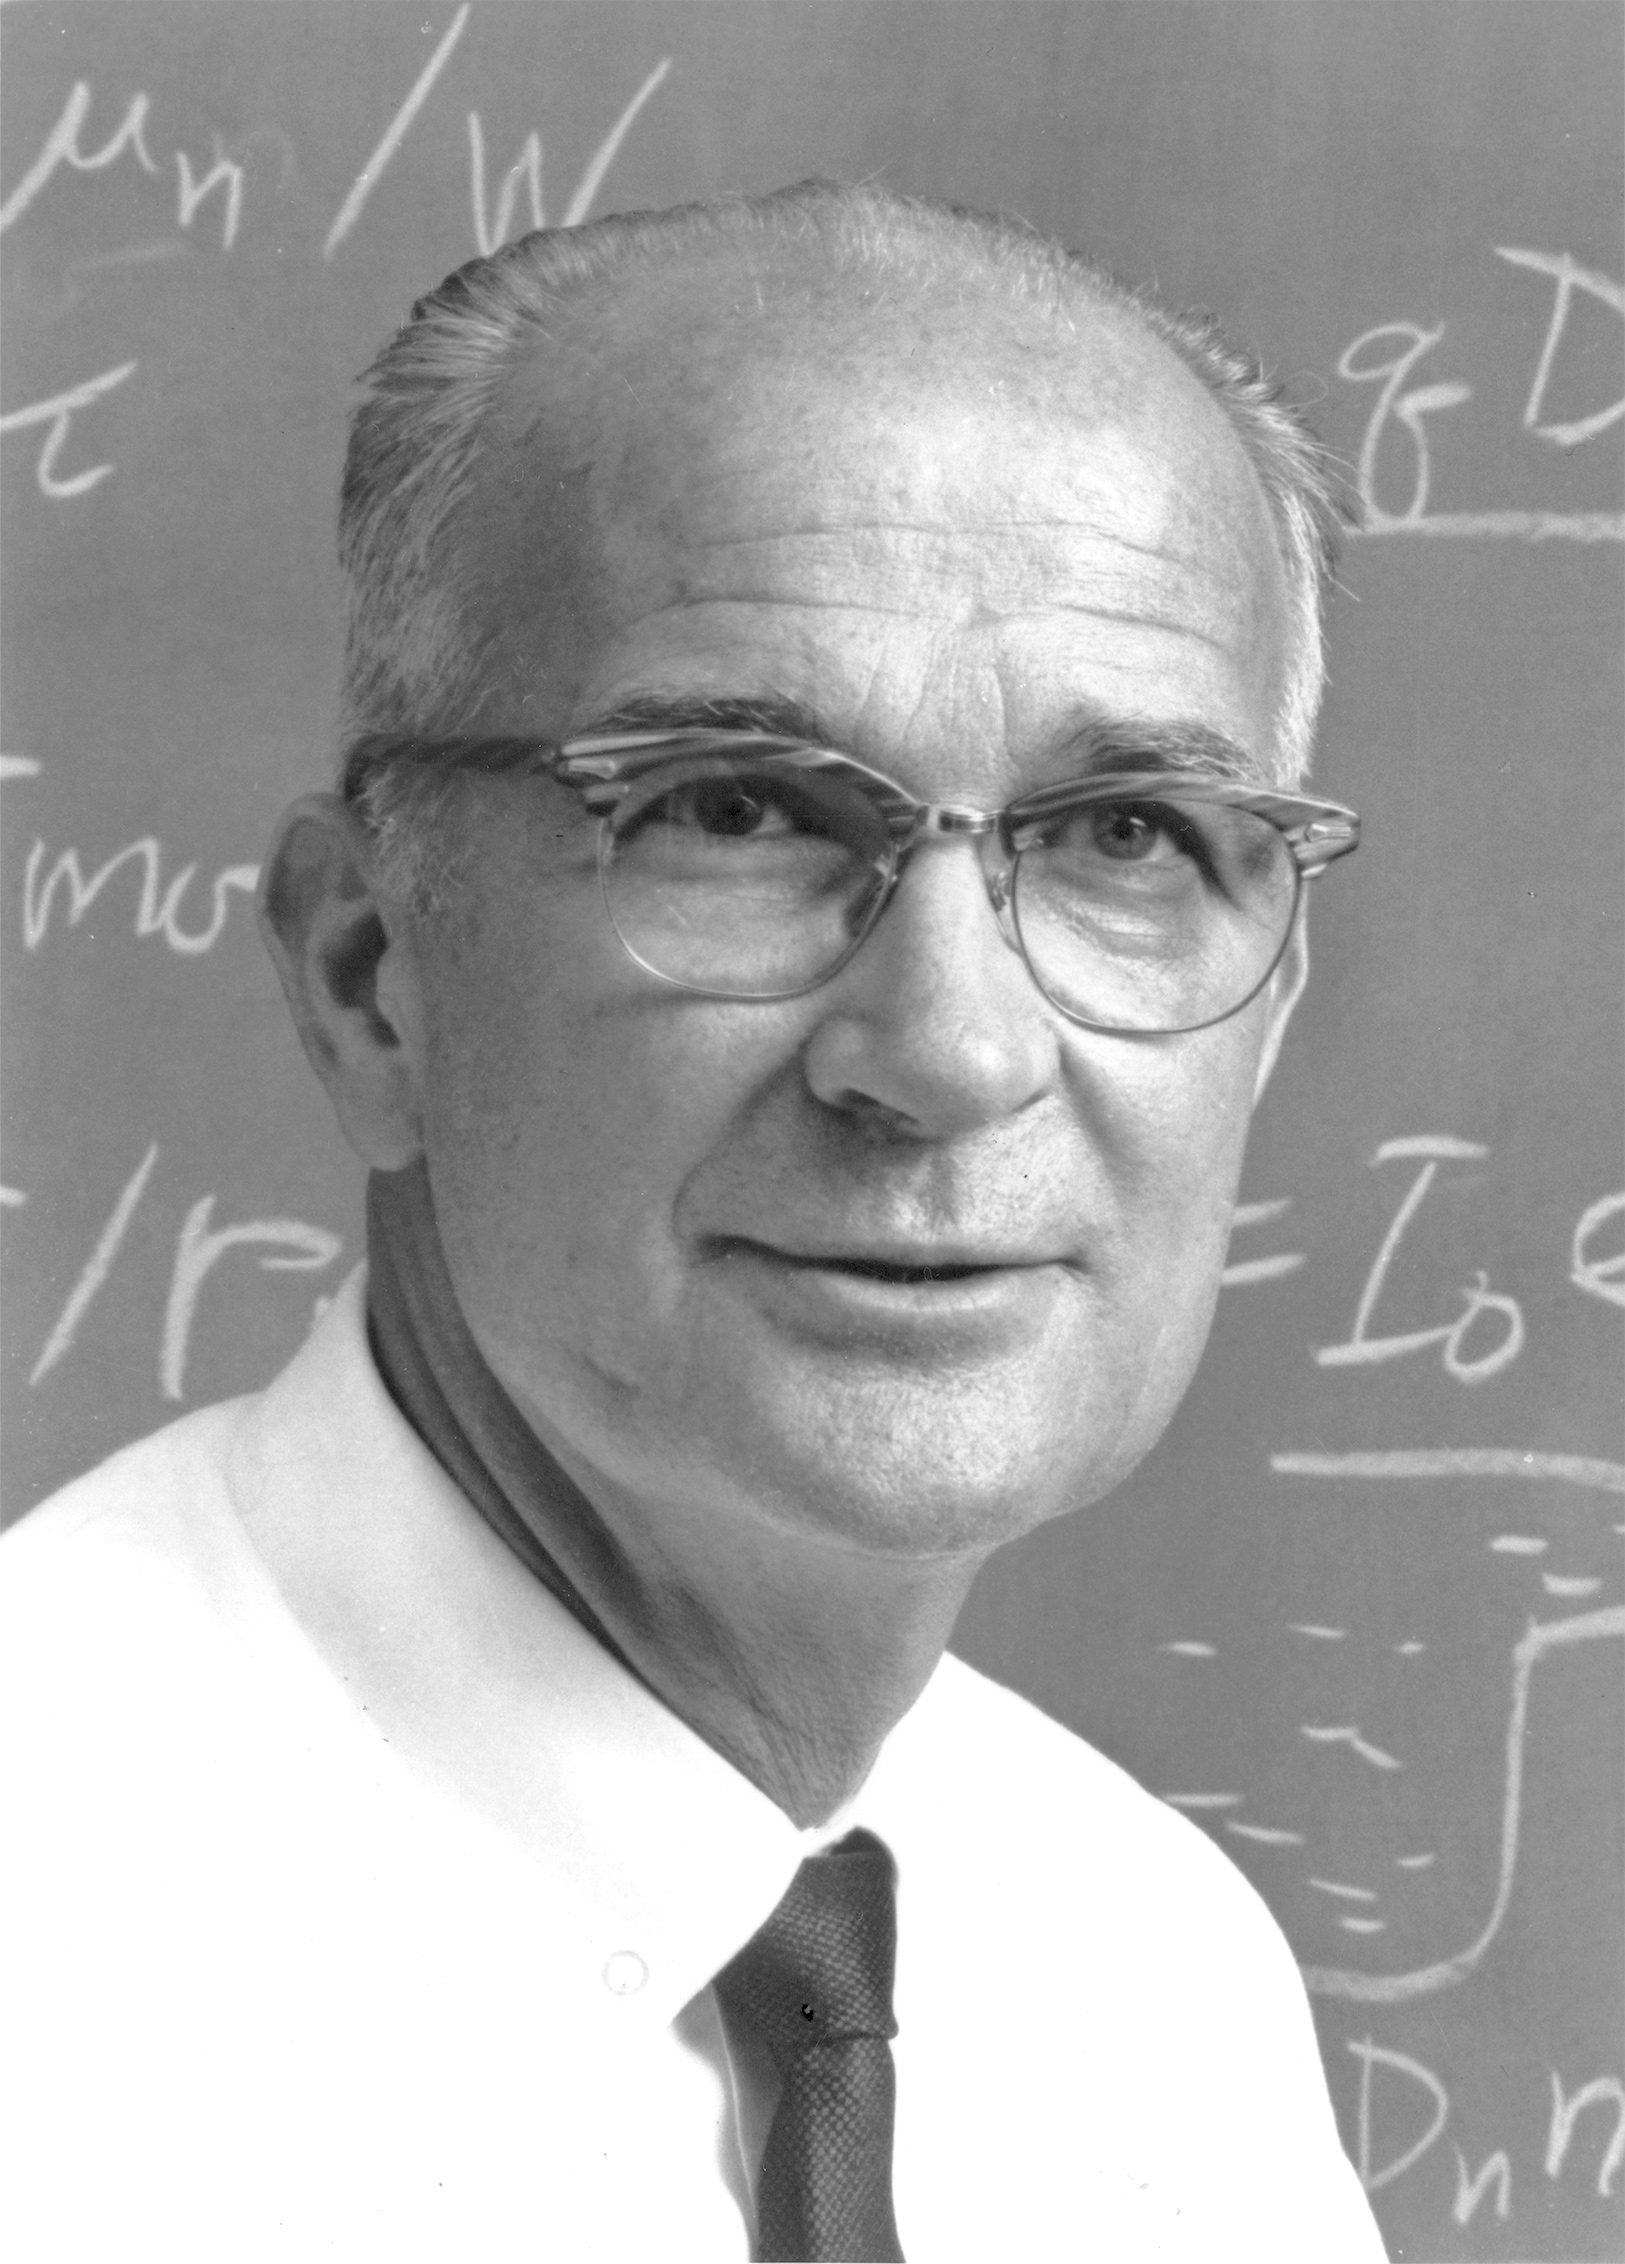 File:William Shockley, Stanford University.jpg